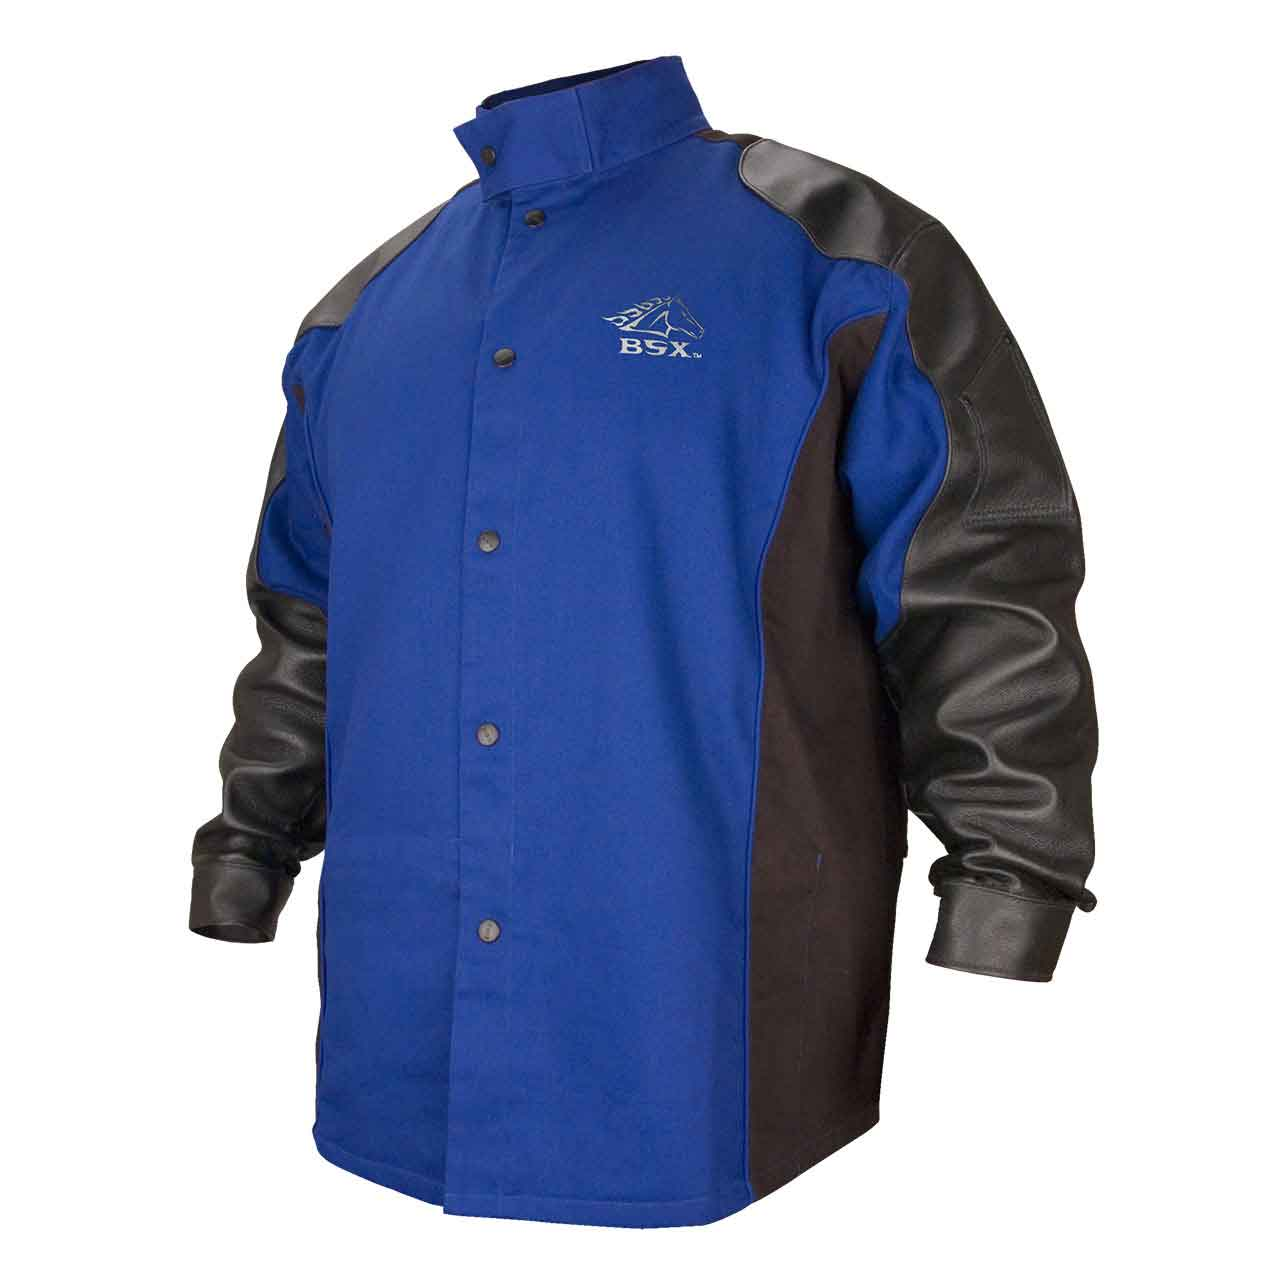 Black Stallion BXRB9C/PS BSX FR Cotton/Pigskin Welding Jacket, Blue/Black, 4X-Large